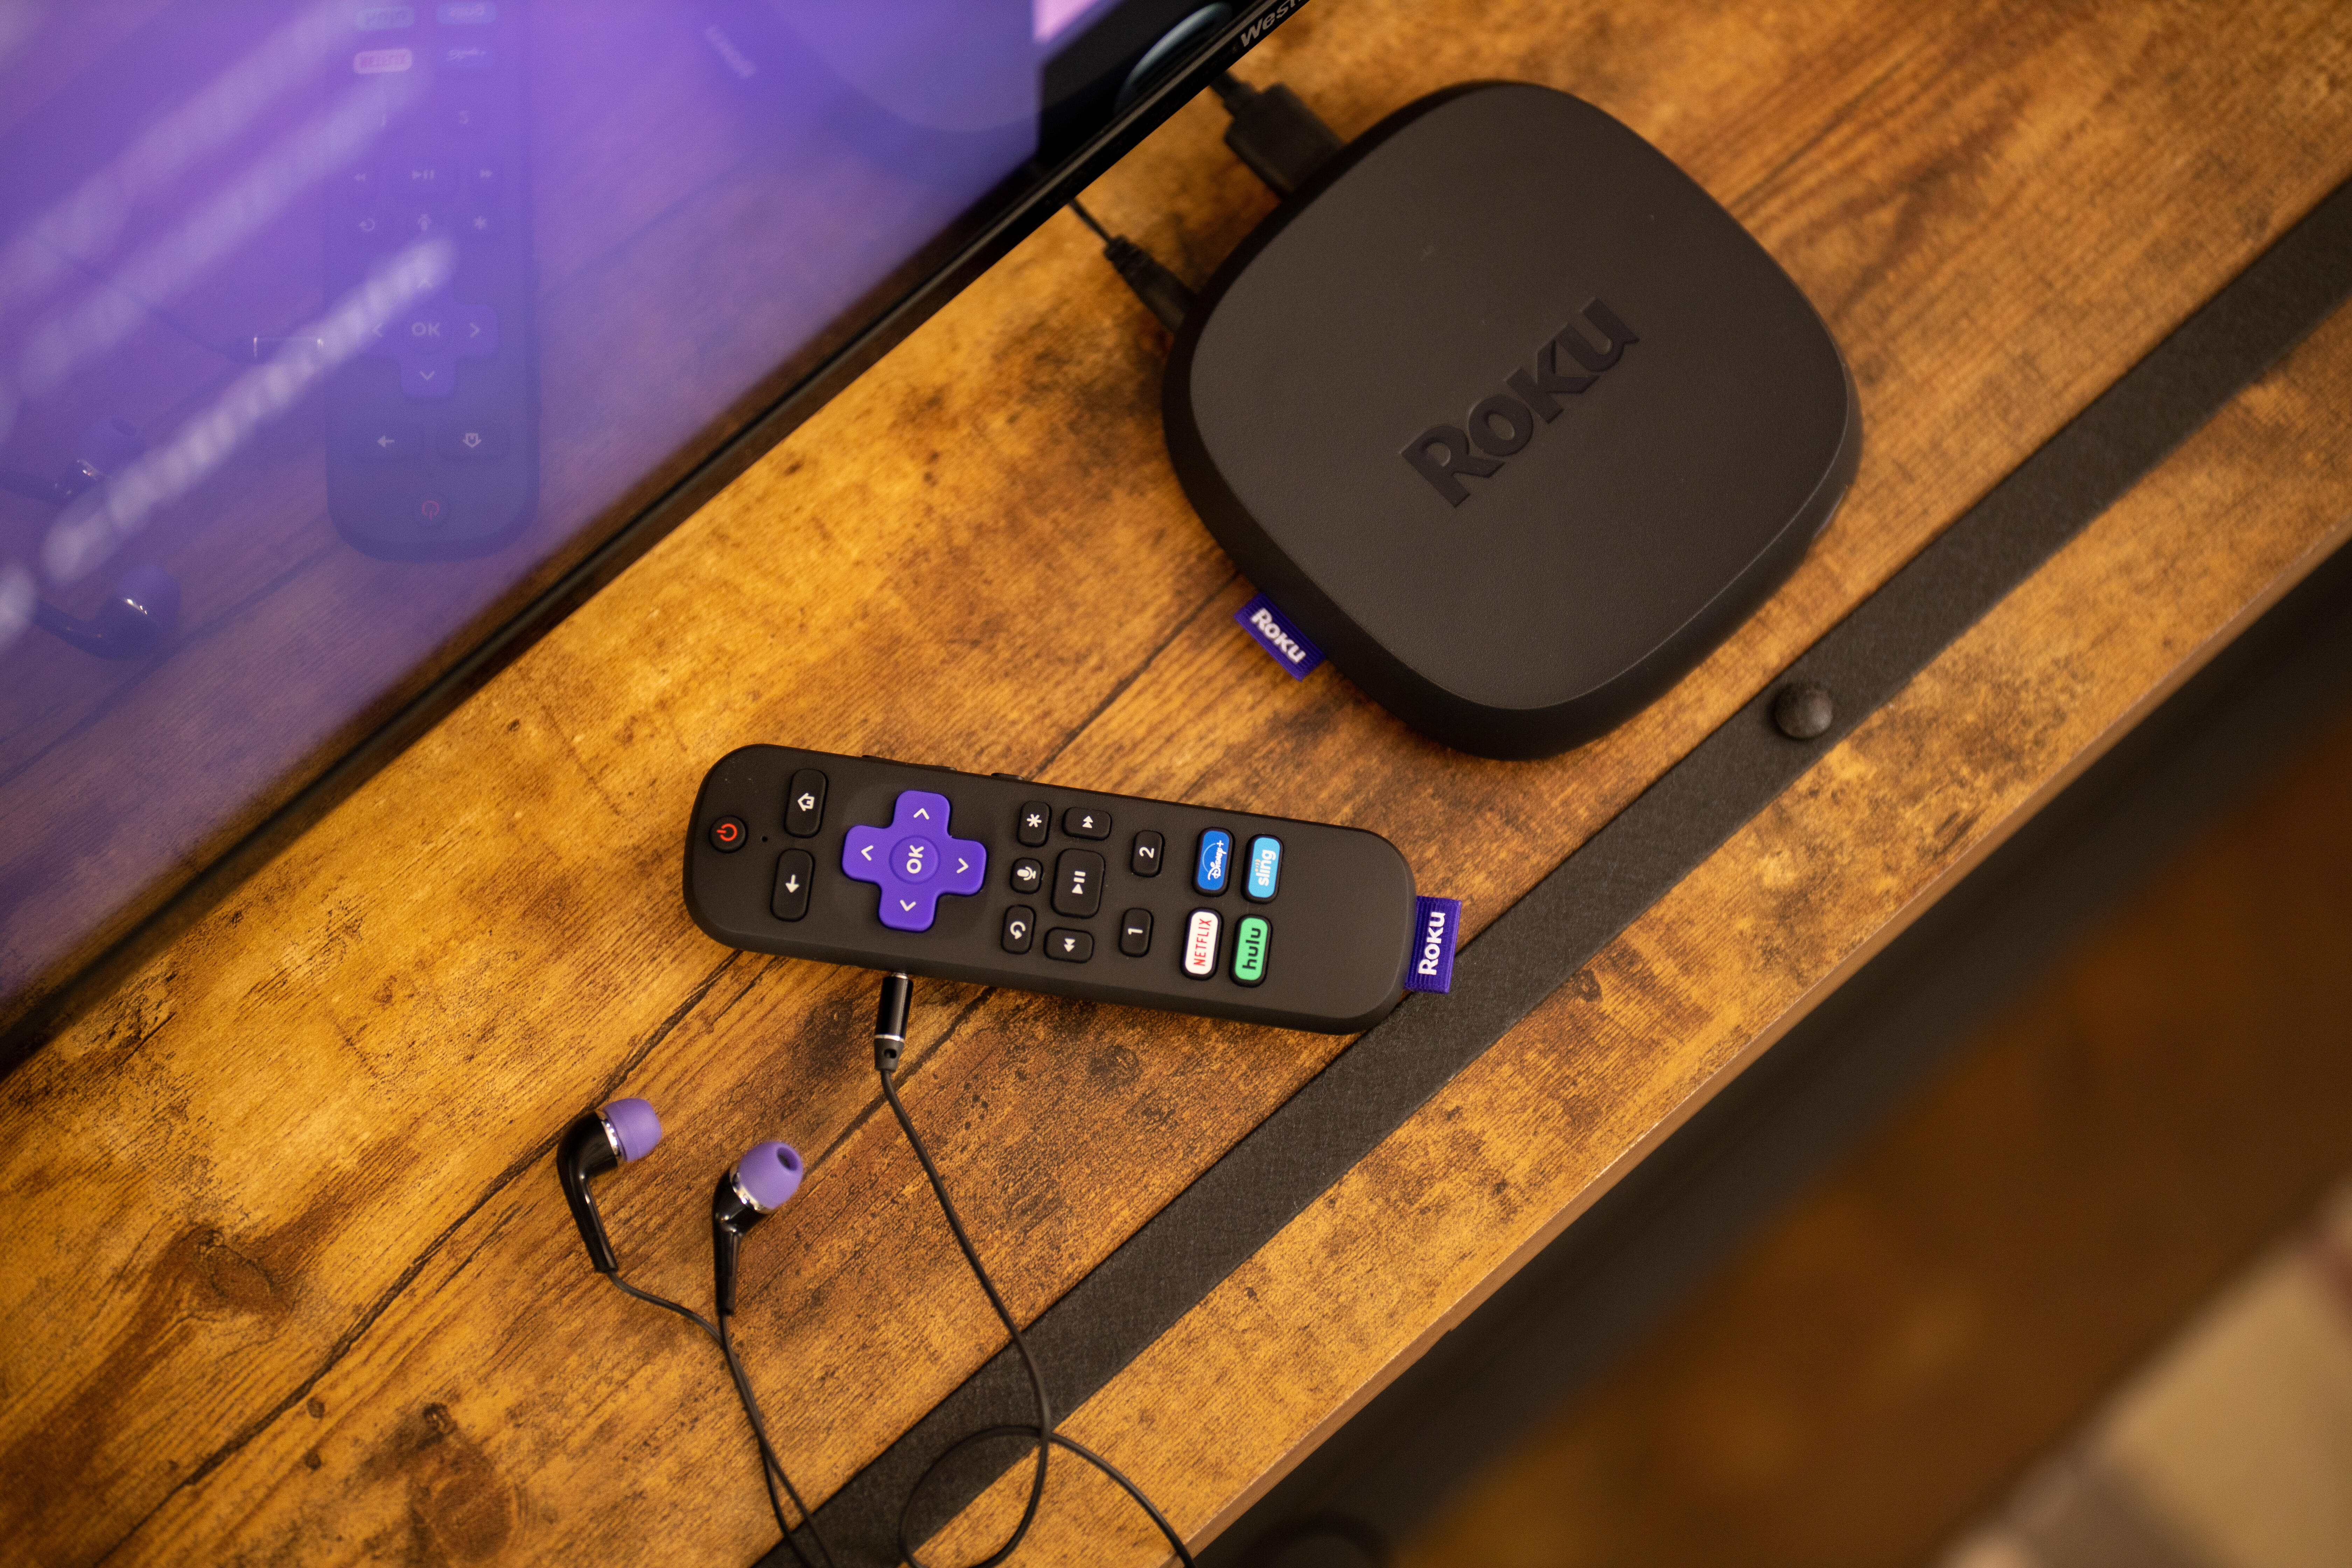 roku-ultra-with-remote-and-headphones-overhead